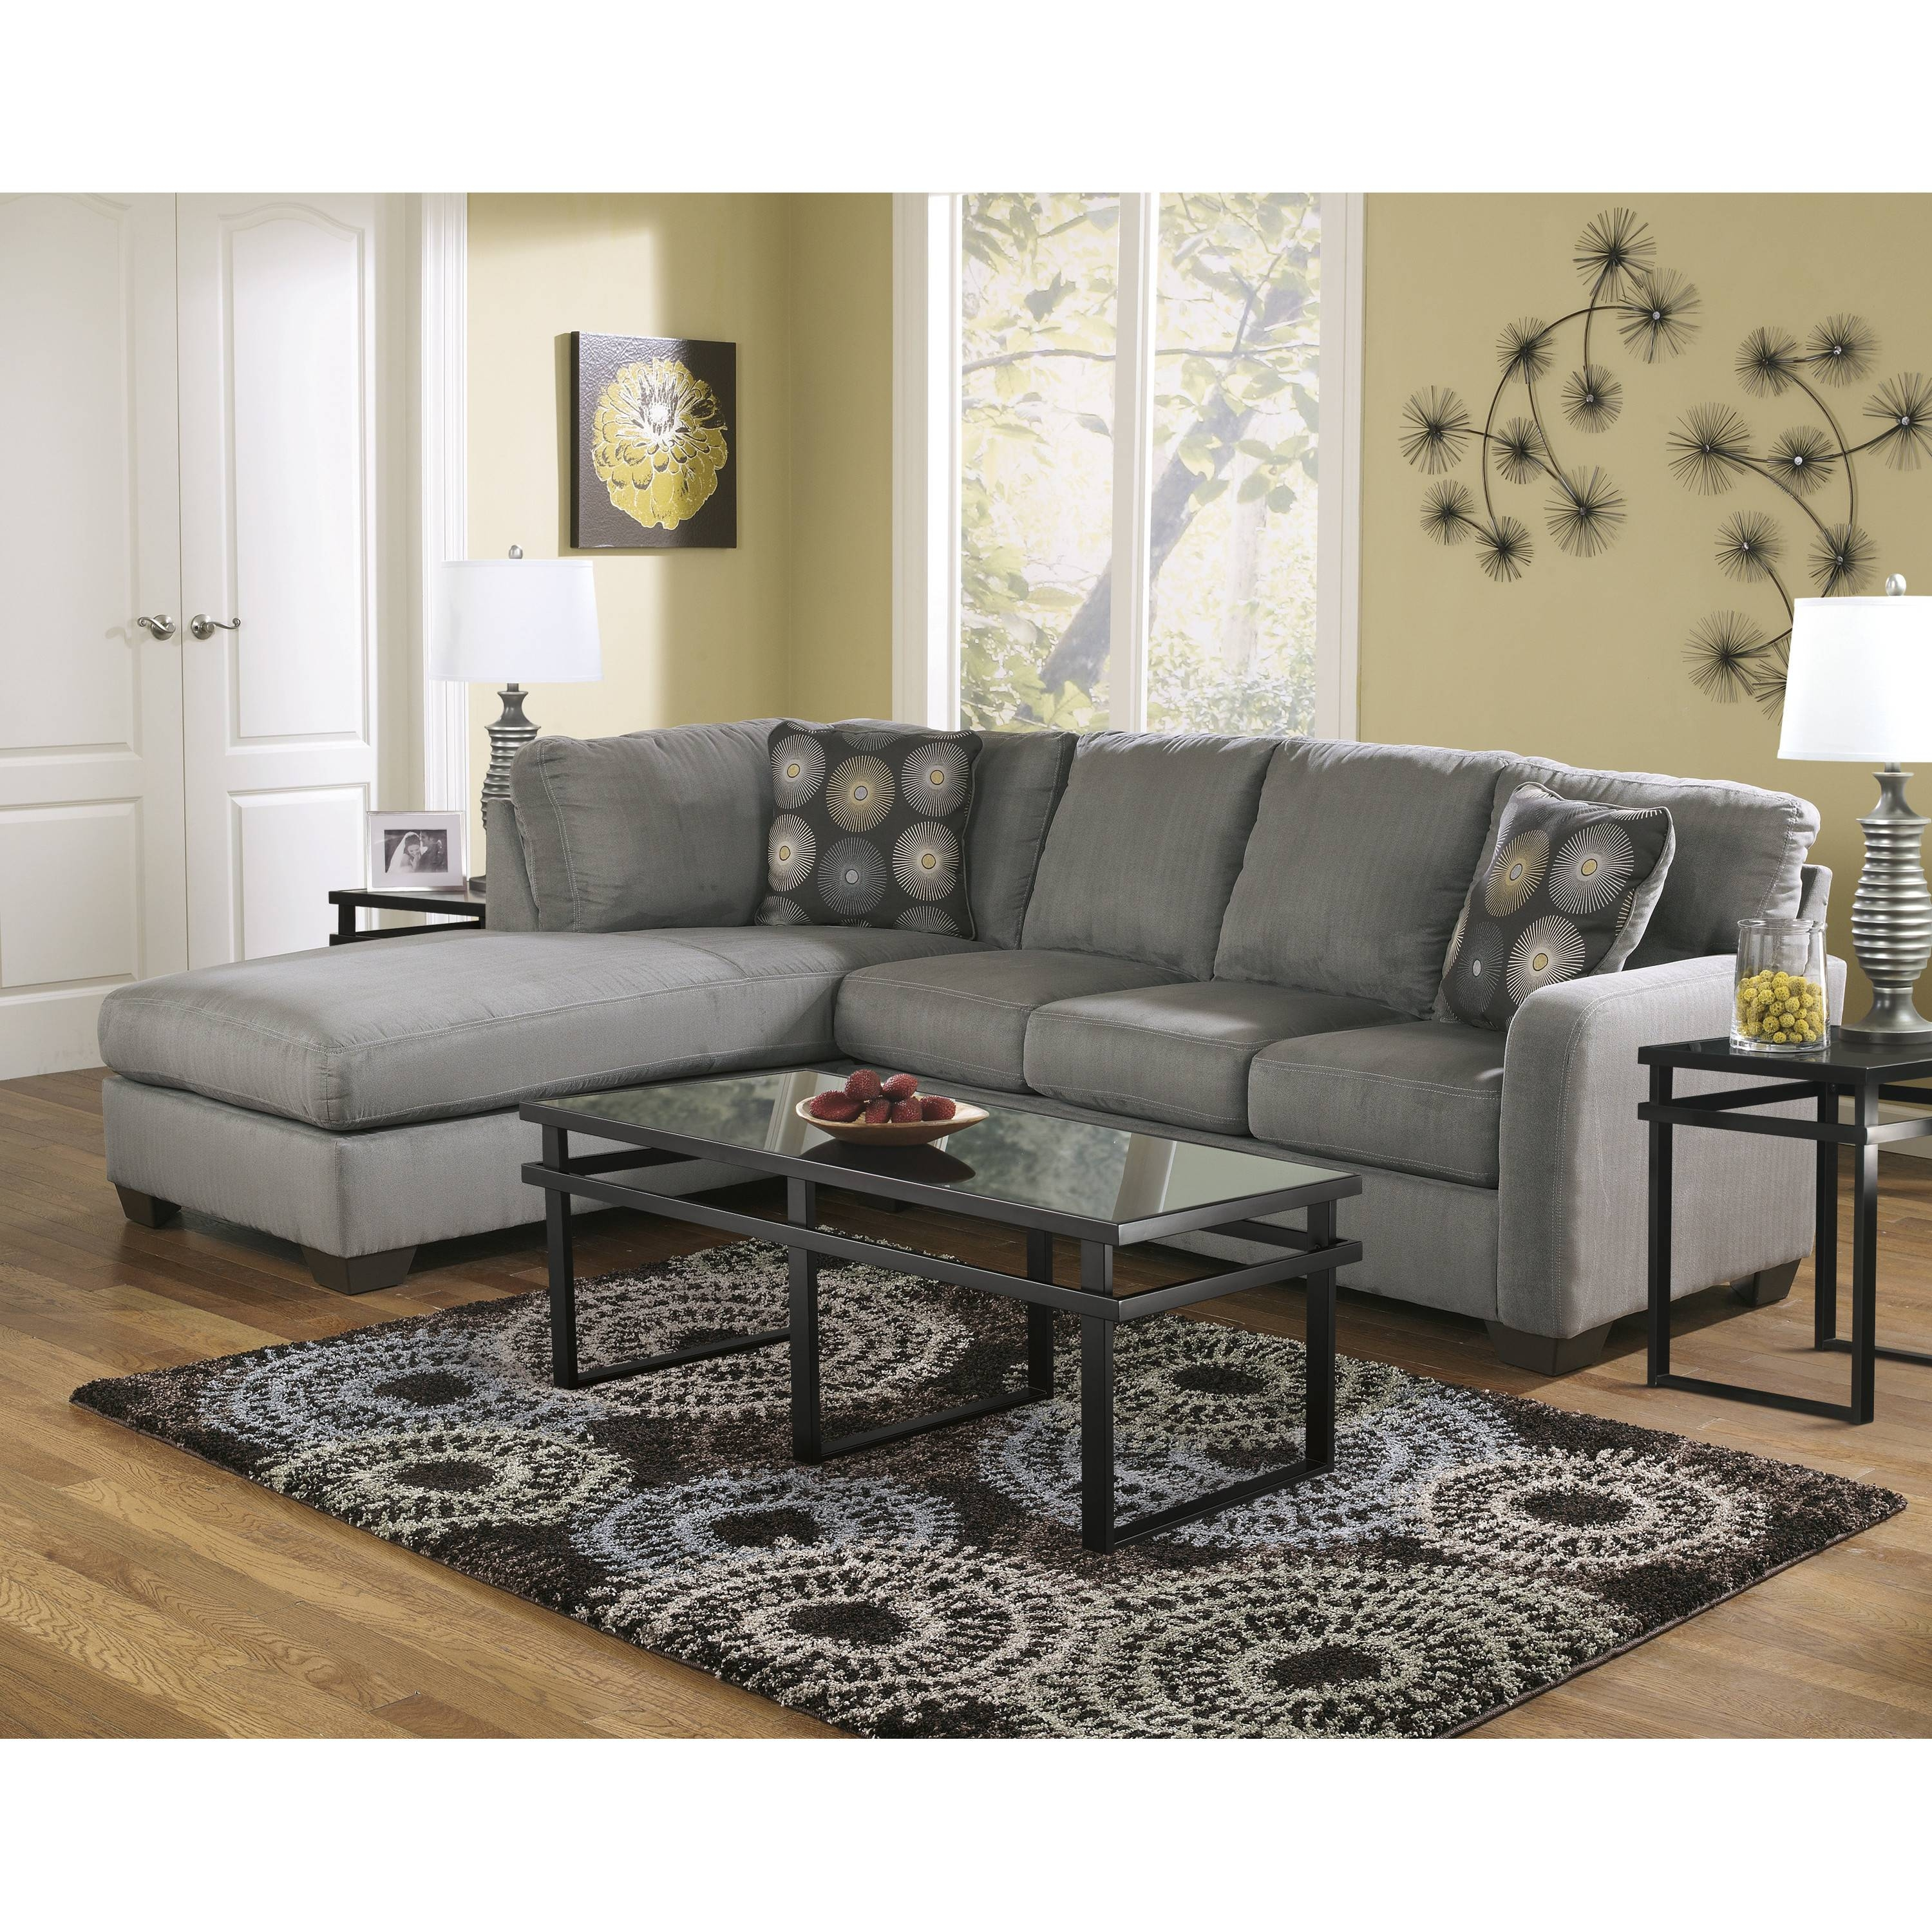 Living Room: Exciting Denim Sectional Sofa Design For Living Room for Small 2 Piece Sectional Sofas (Image 23 of 30)